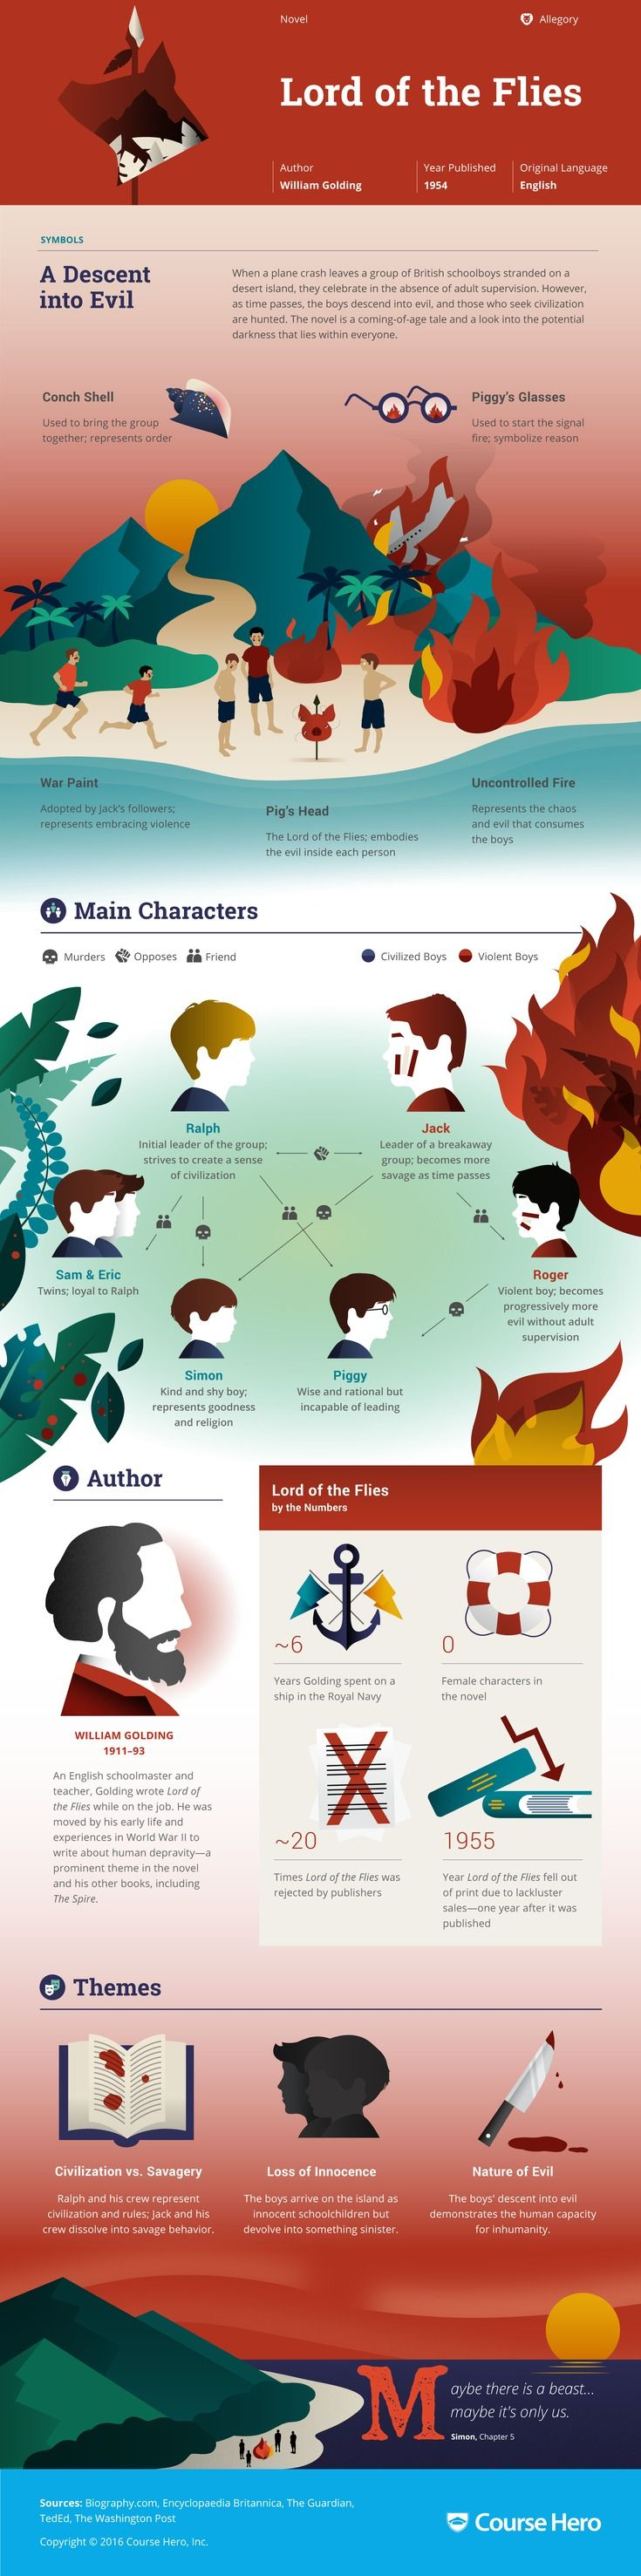 images about literary art study guide for william golding s lord of the flies including chapter summary character analysis and more learn all about lord of the flies